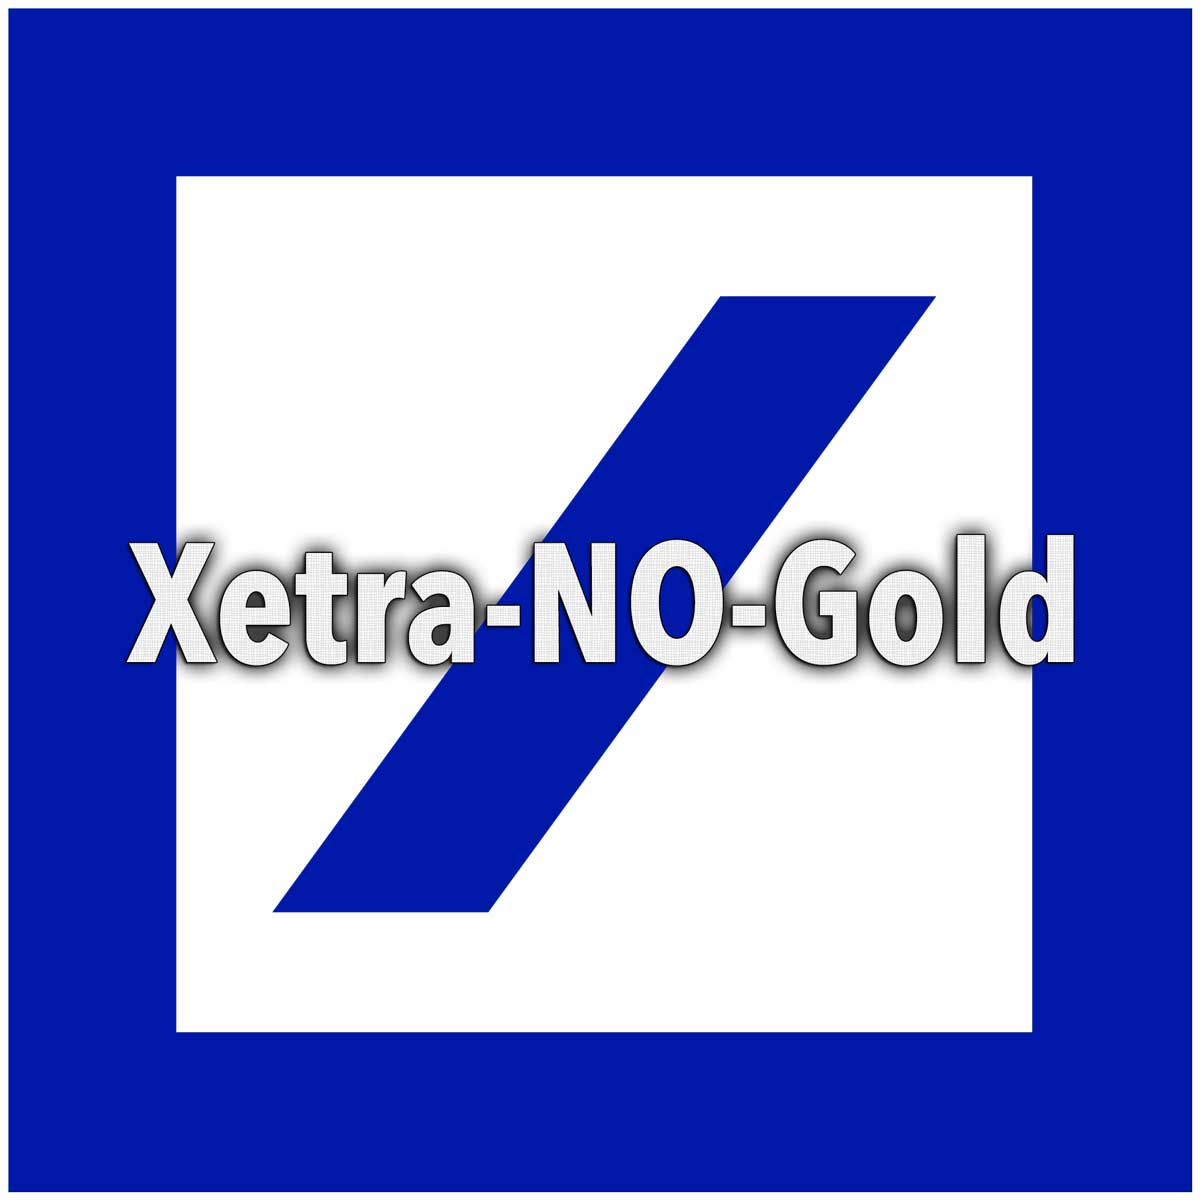 Deutsche Bank Refuses Delivery Of Physical Gold Upon Demand (Xetra-Gold)